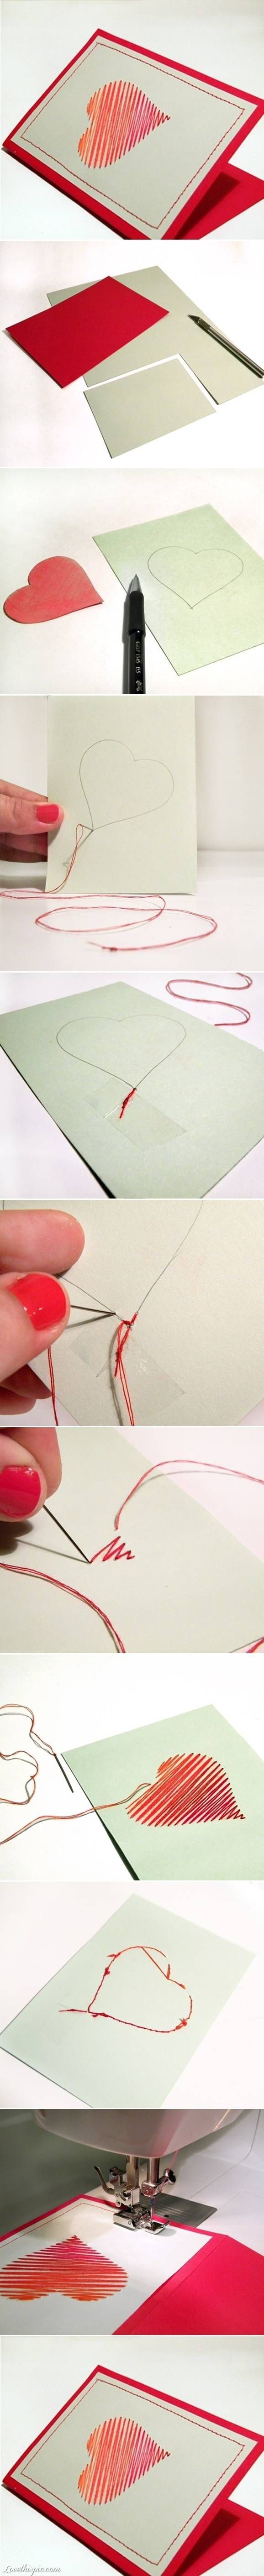 DIY Heart Card diy crafts home made easy crafts craft idea crafts ideas diy ideas diy crafts diy idea do it yourself diy projects diy craft handmade diy sewing diy gifts craft gifts